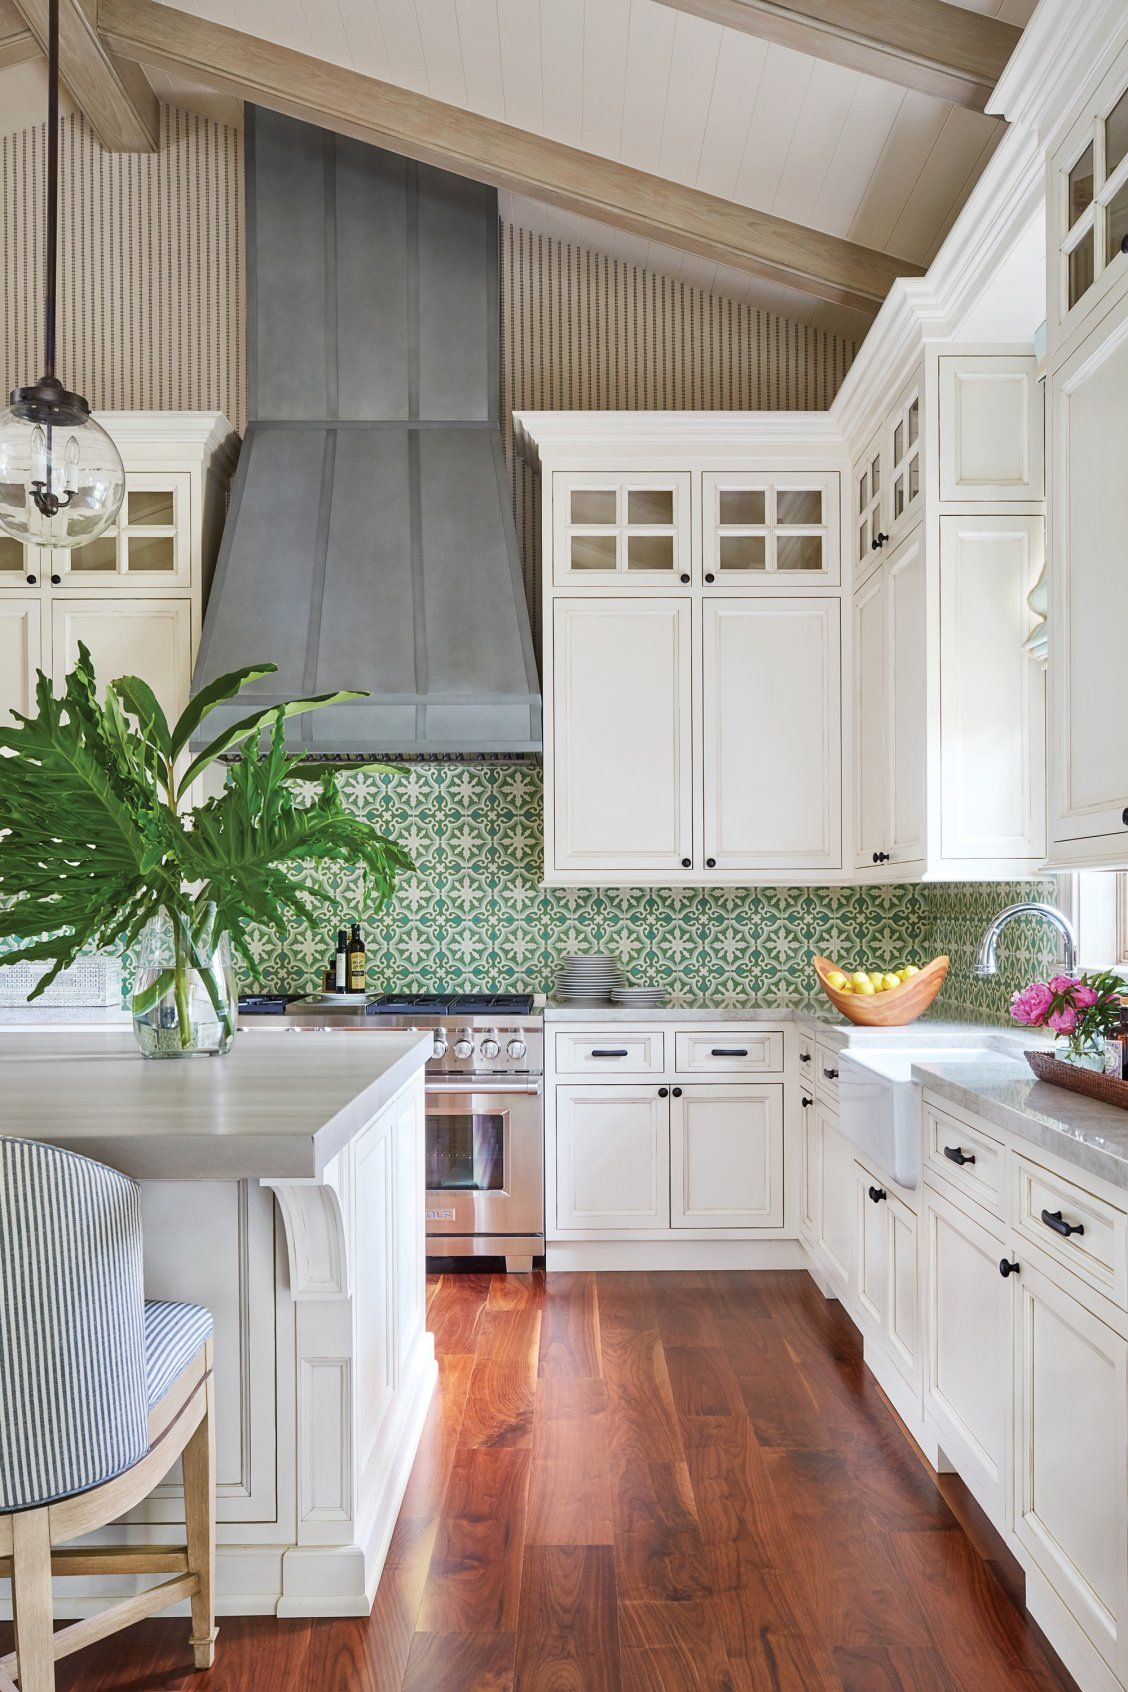 This New Palm Beach House Is Bursting With Old Florida Charm Backsplash For White Cabinets Green Backsplash Kitchen Design